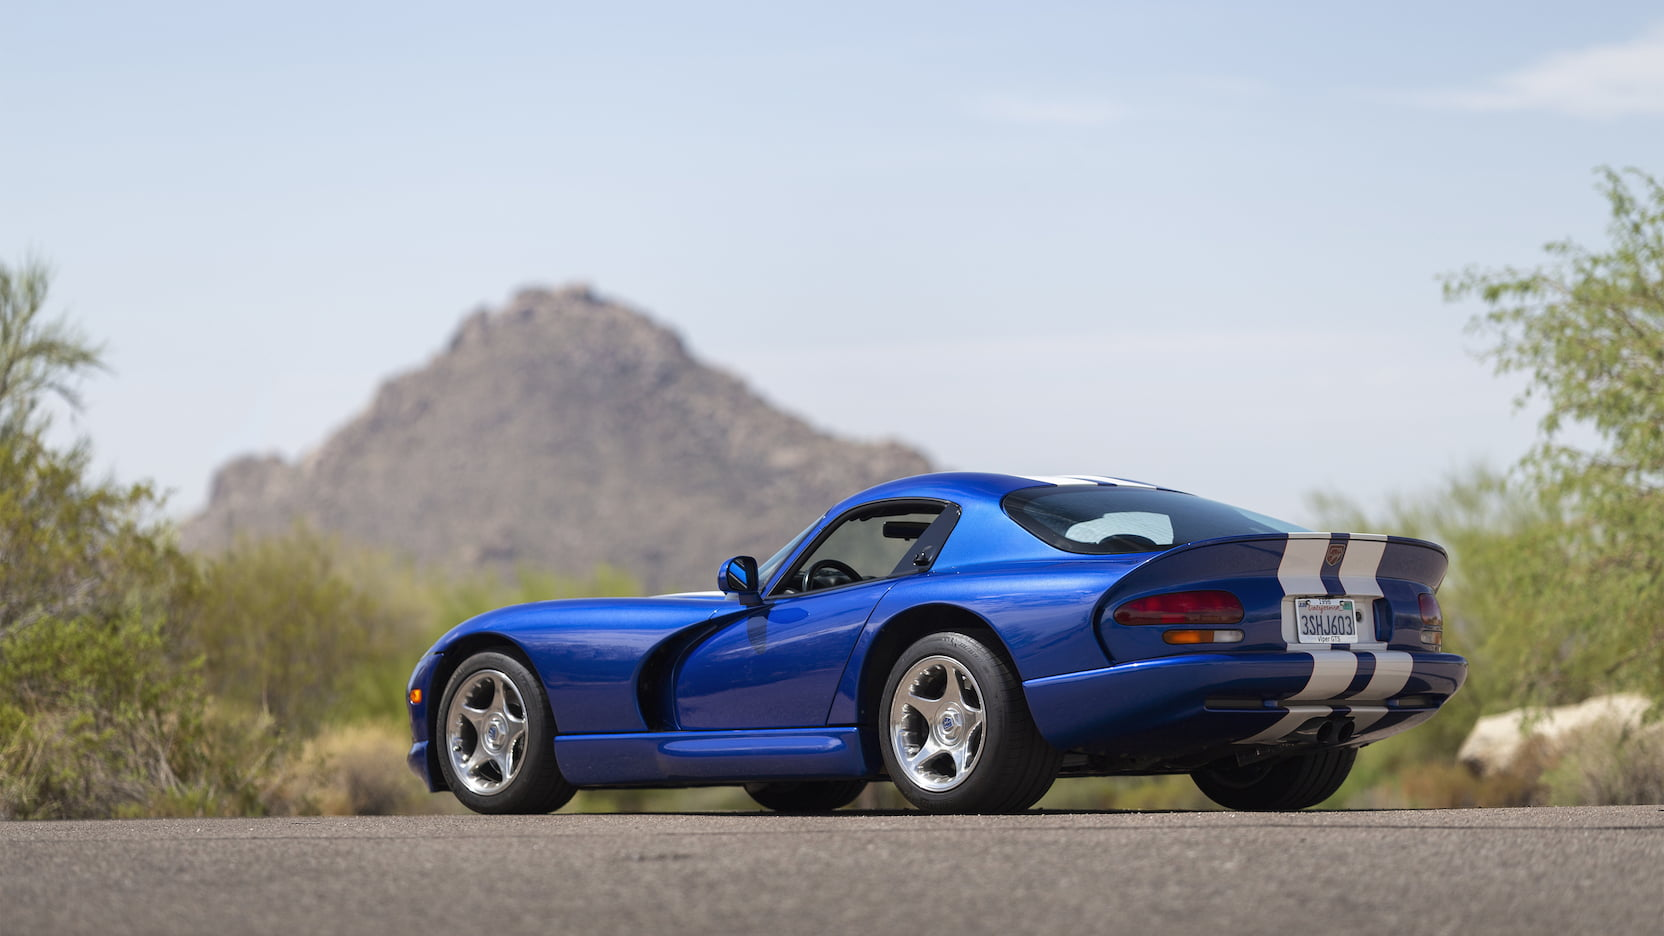 1996 Dodge Viper GTS 3/4 rear mountain low